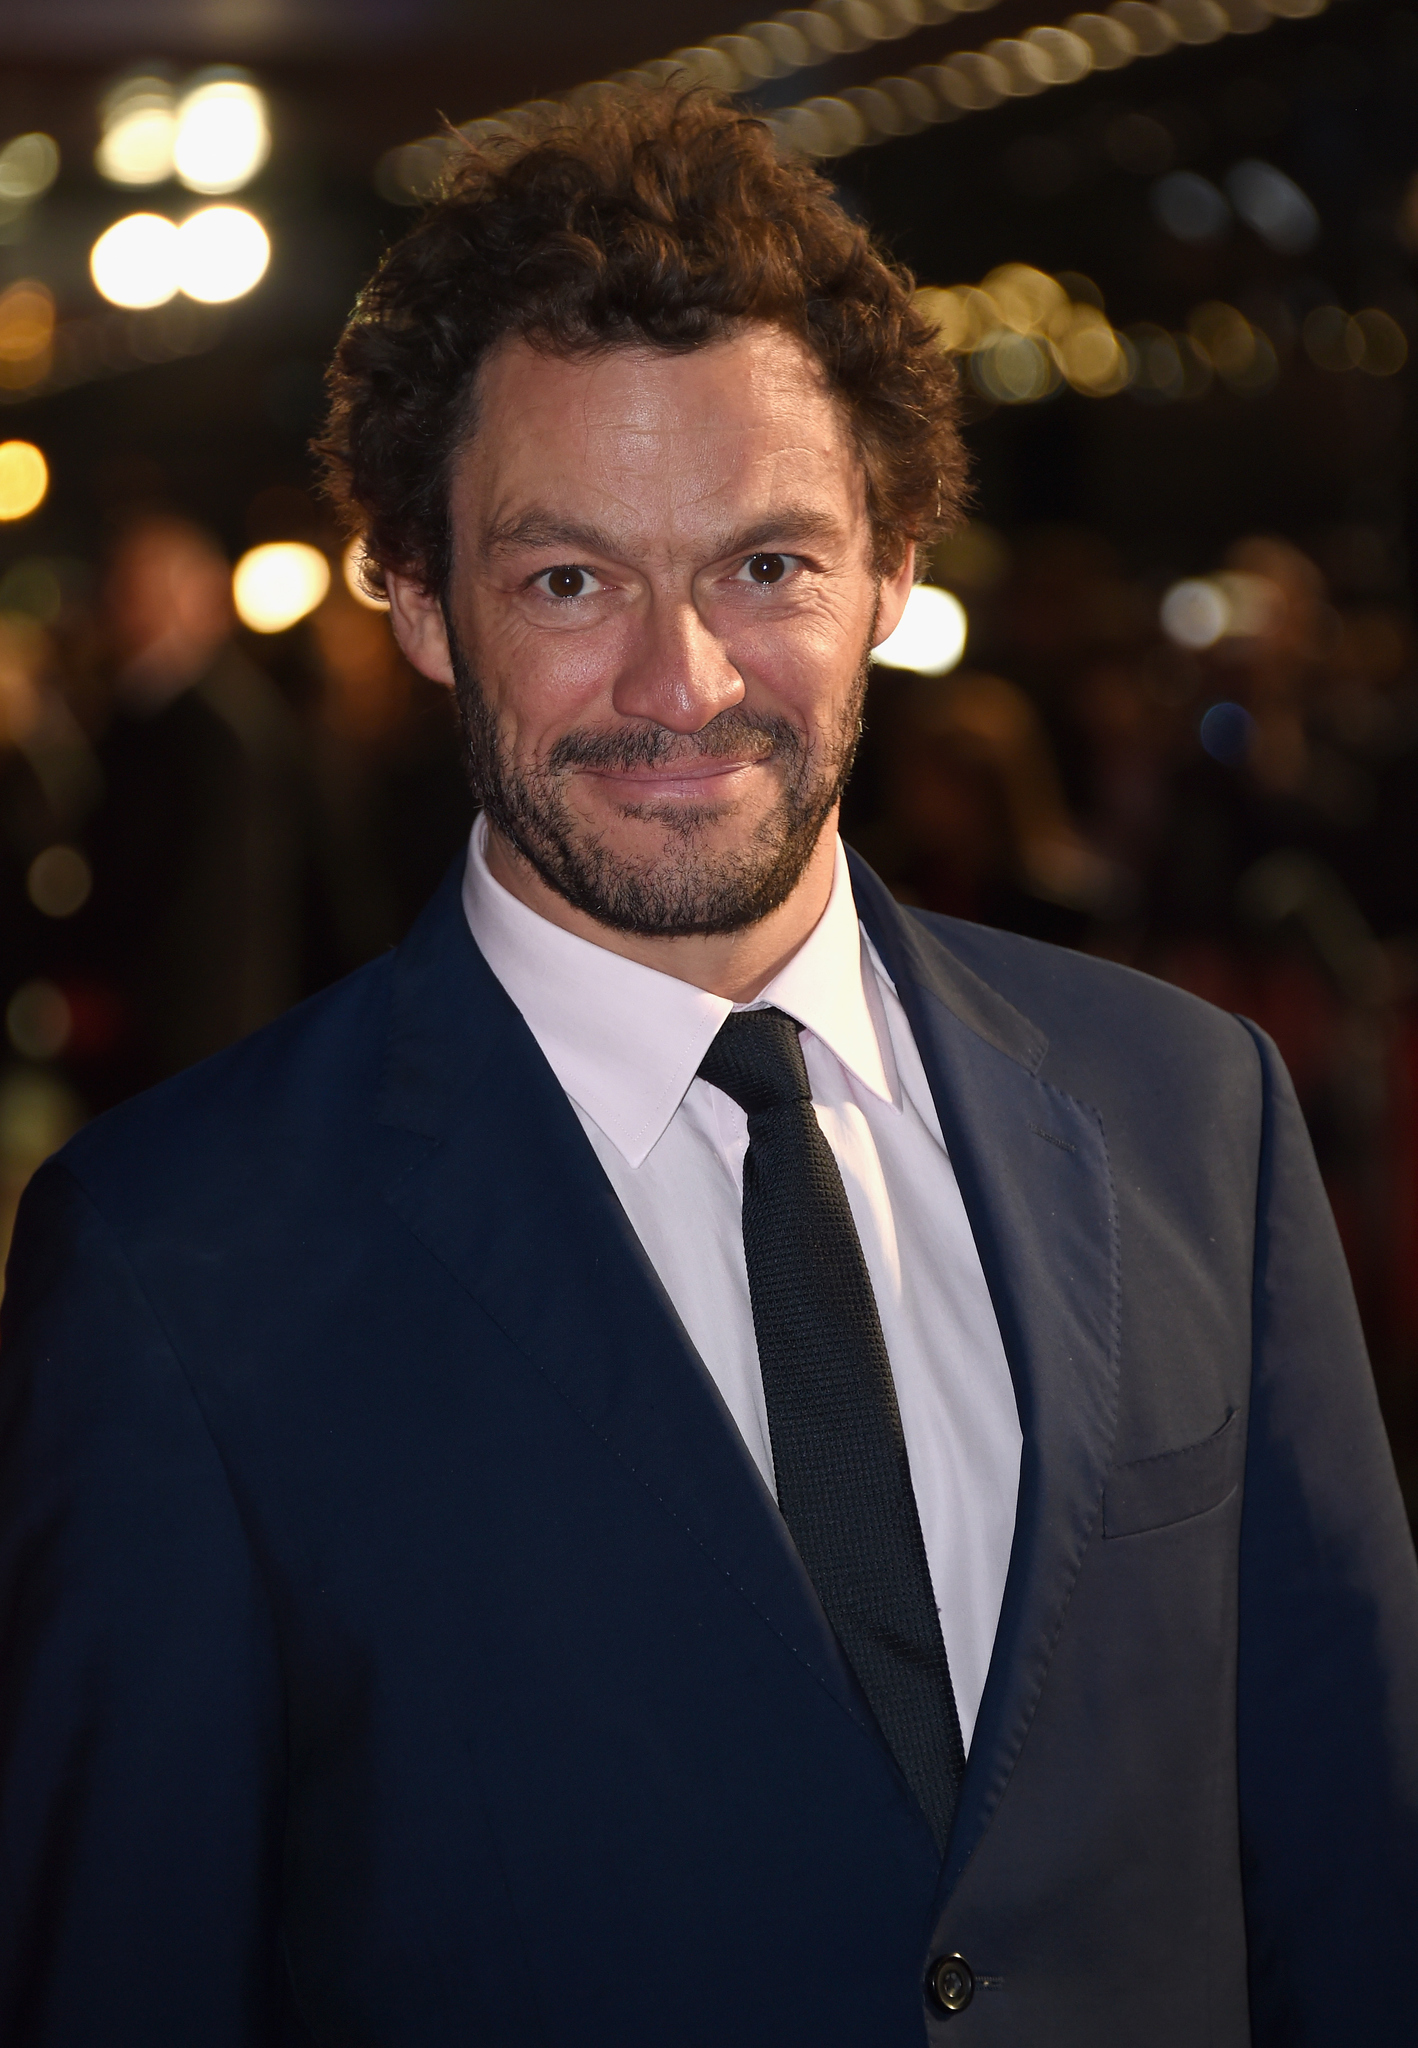 Dominic West at an event for Testament of Youth (2014)